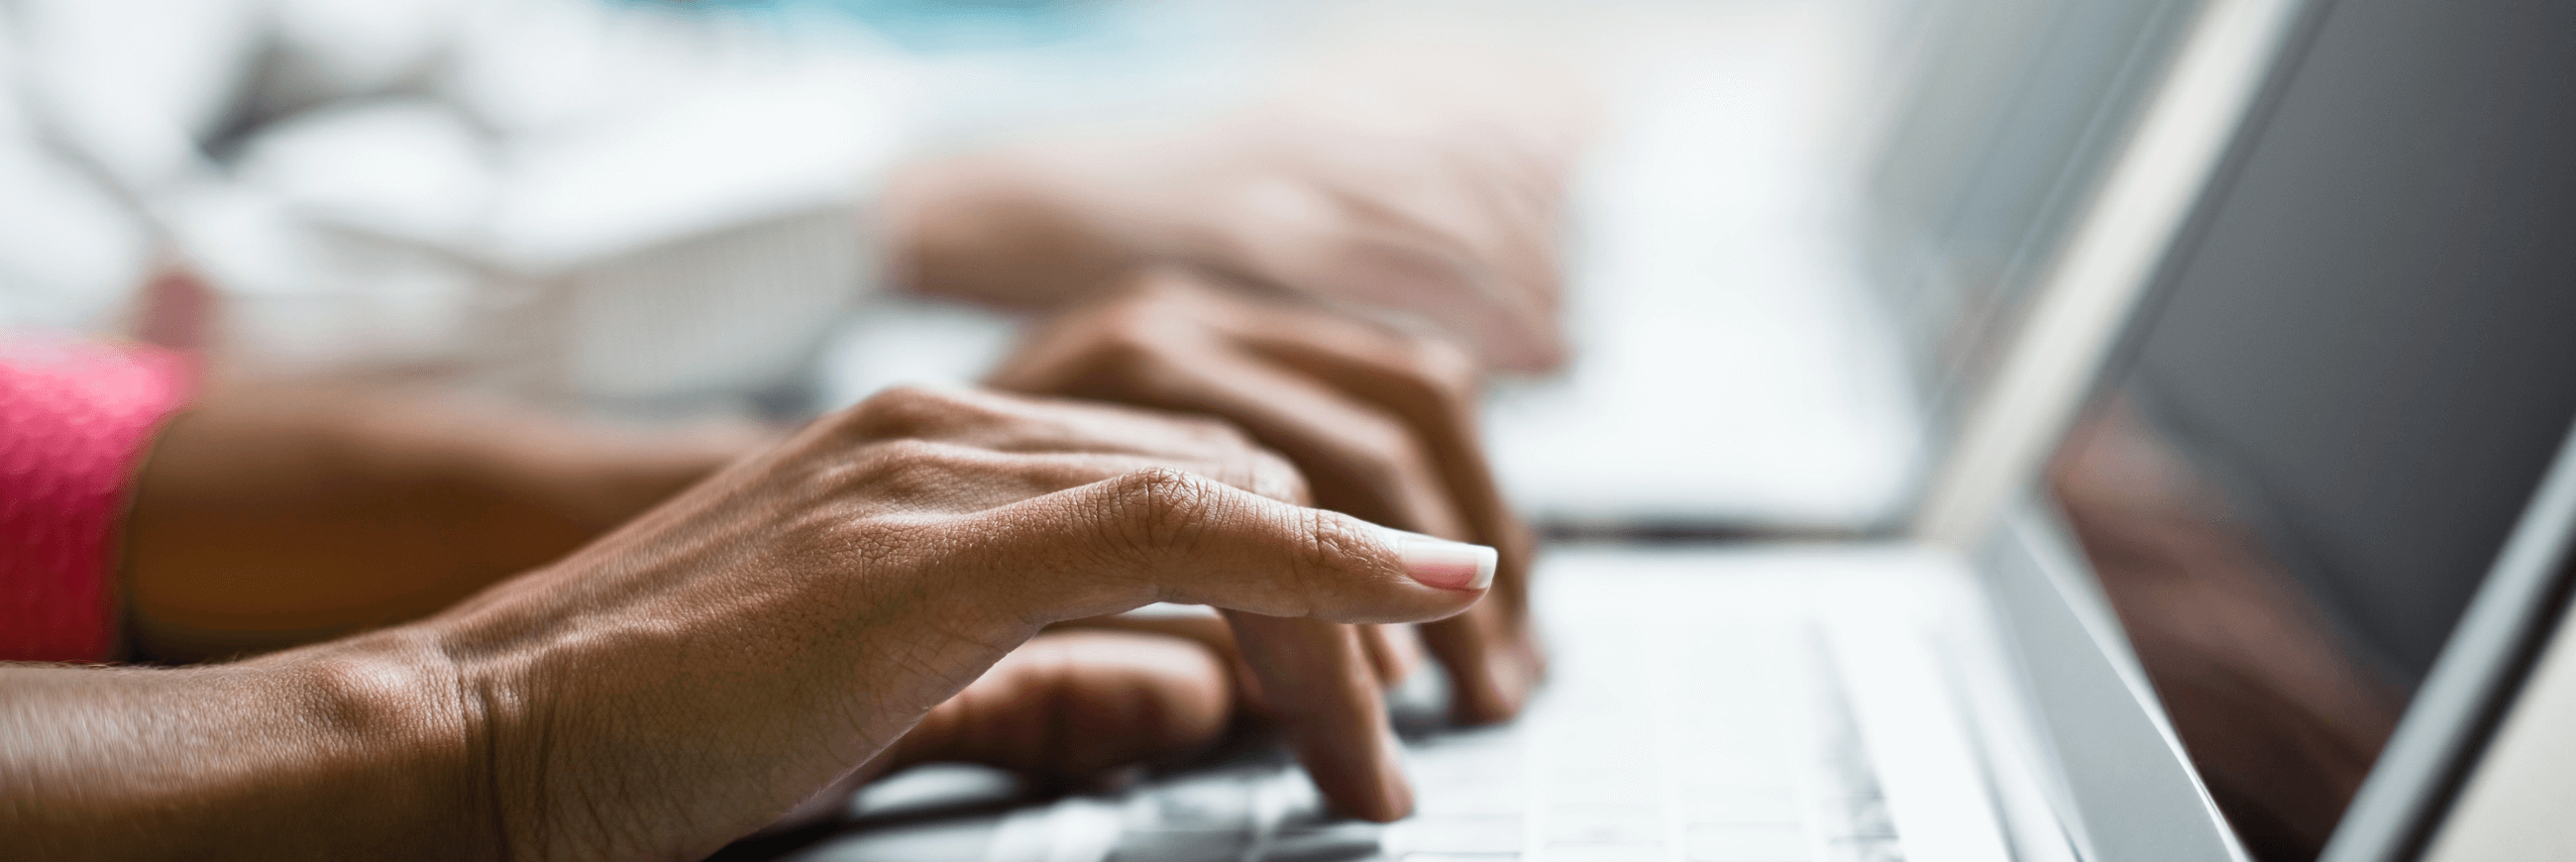 Close-up photo of woman's hands typing on laptop